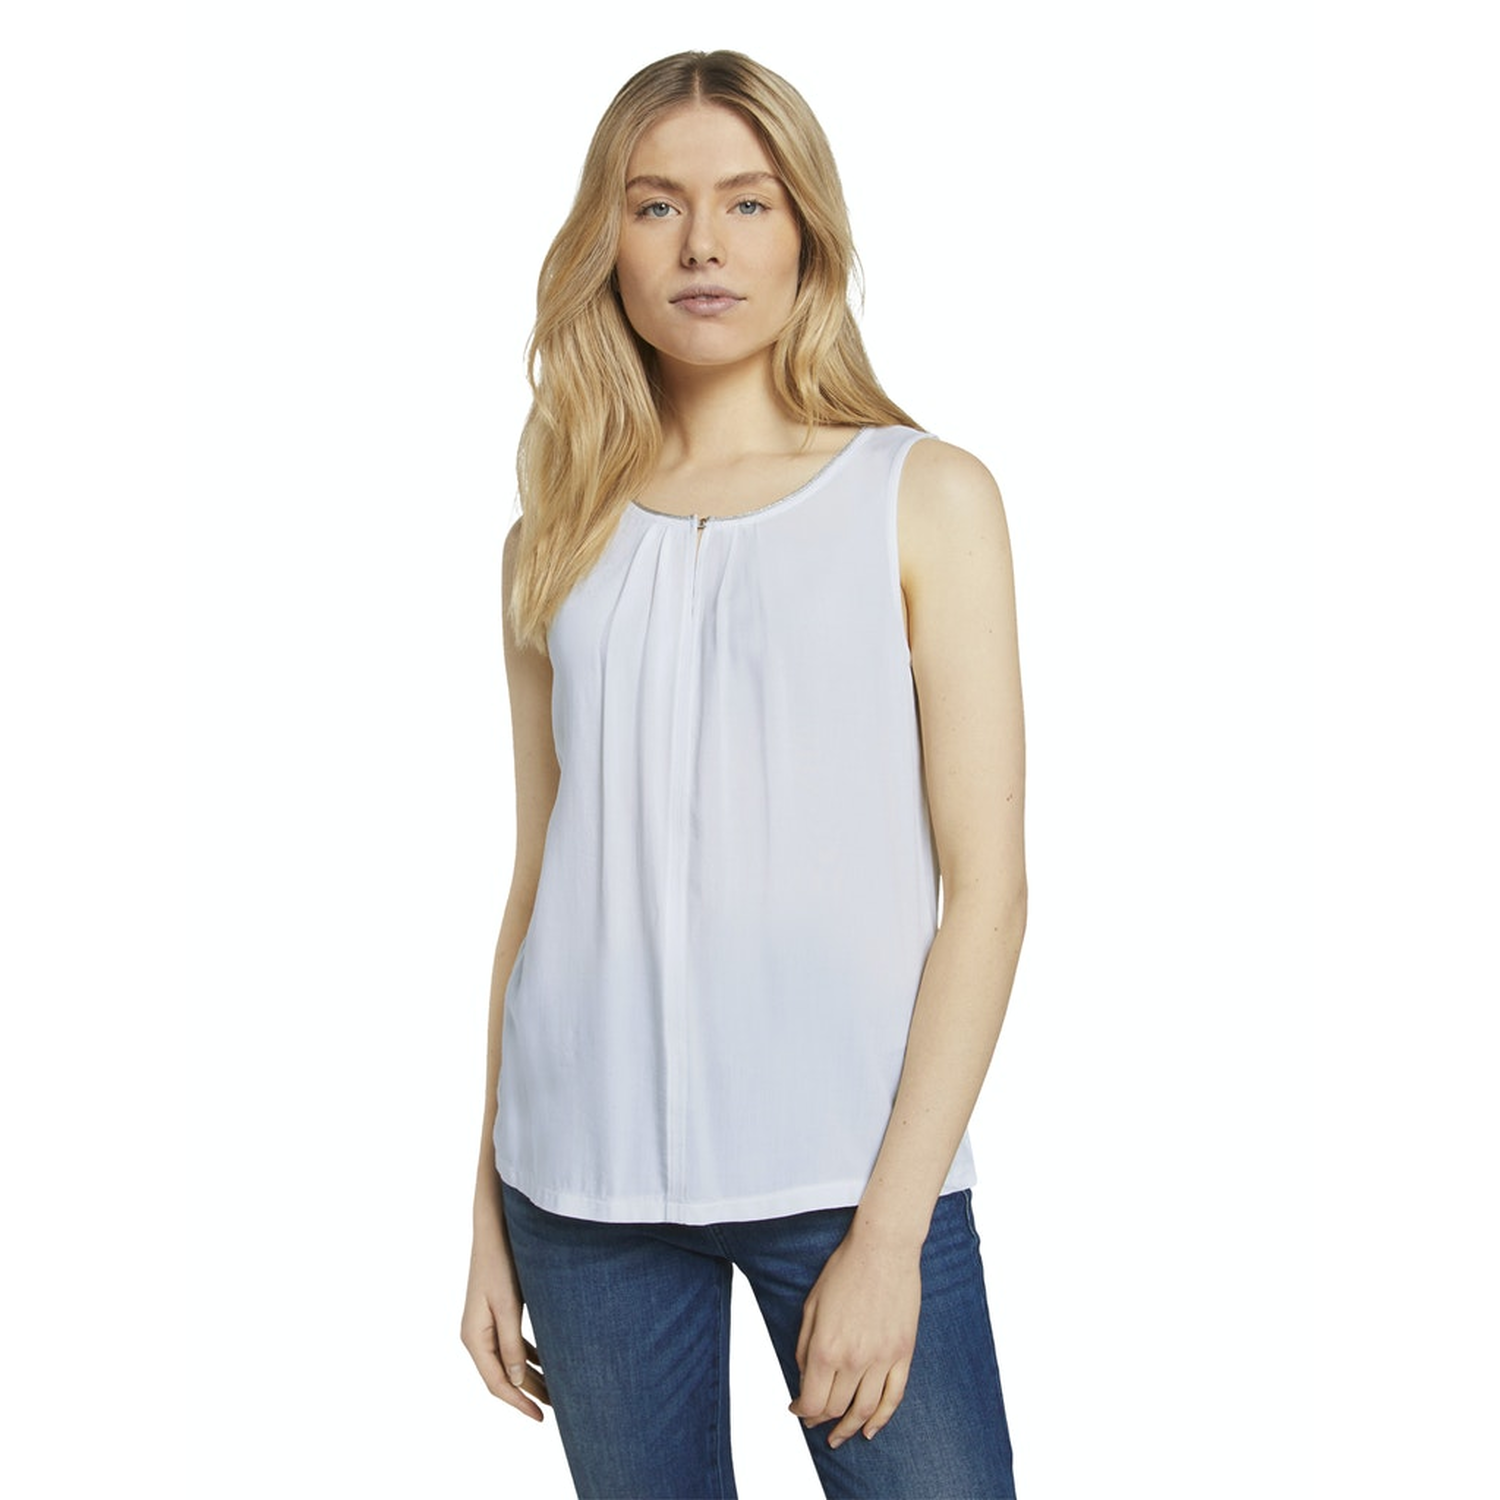 TOM TAILOR Top mit Glitzer Details offwhite